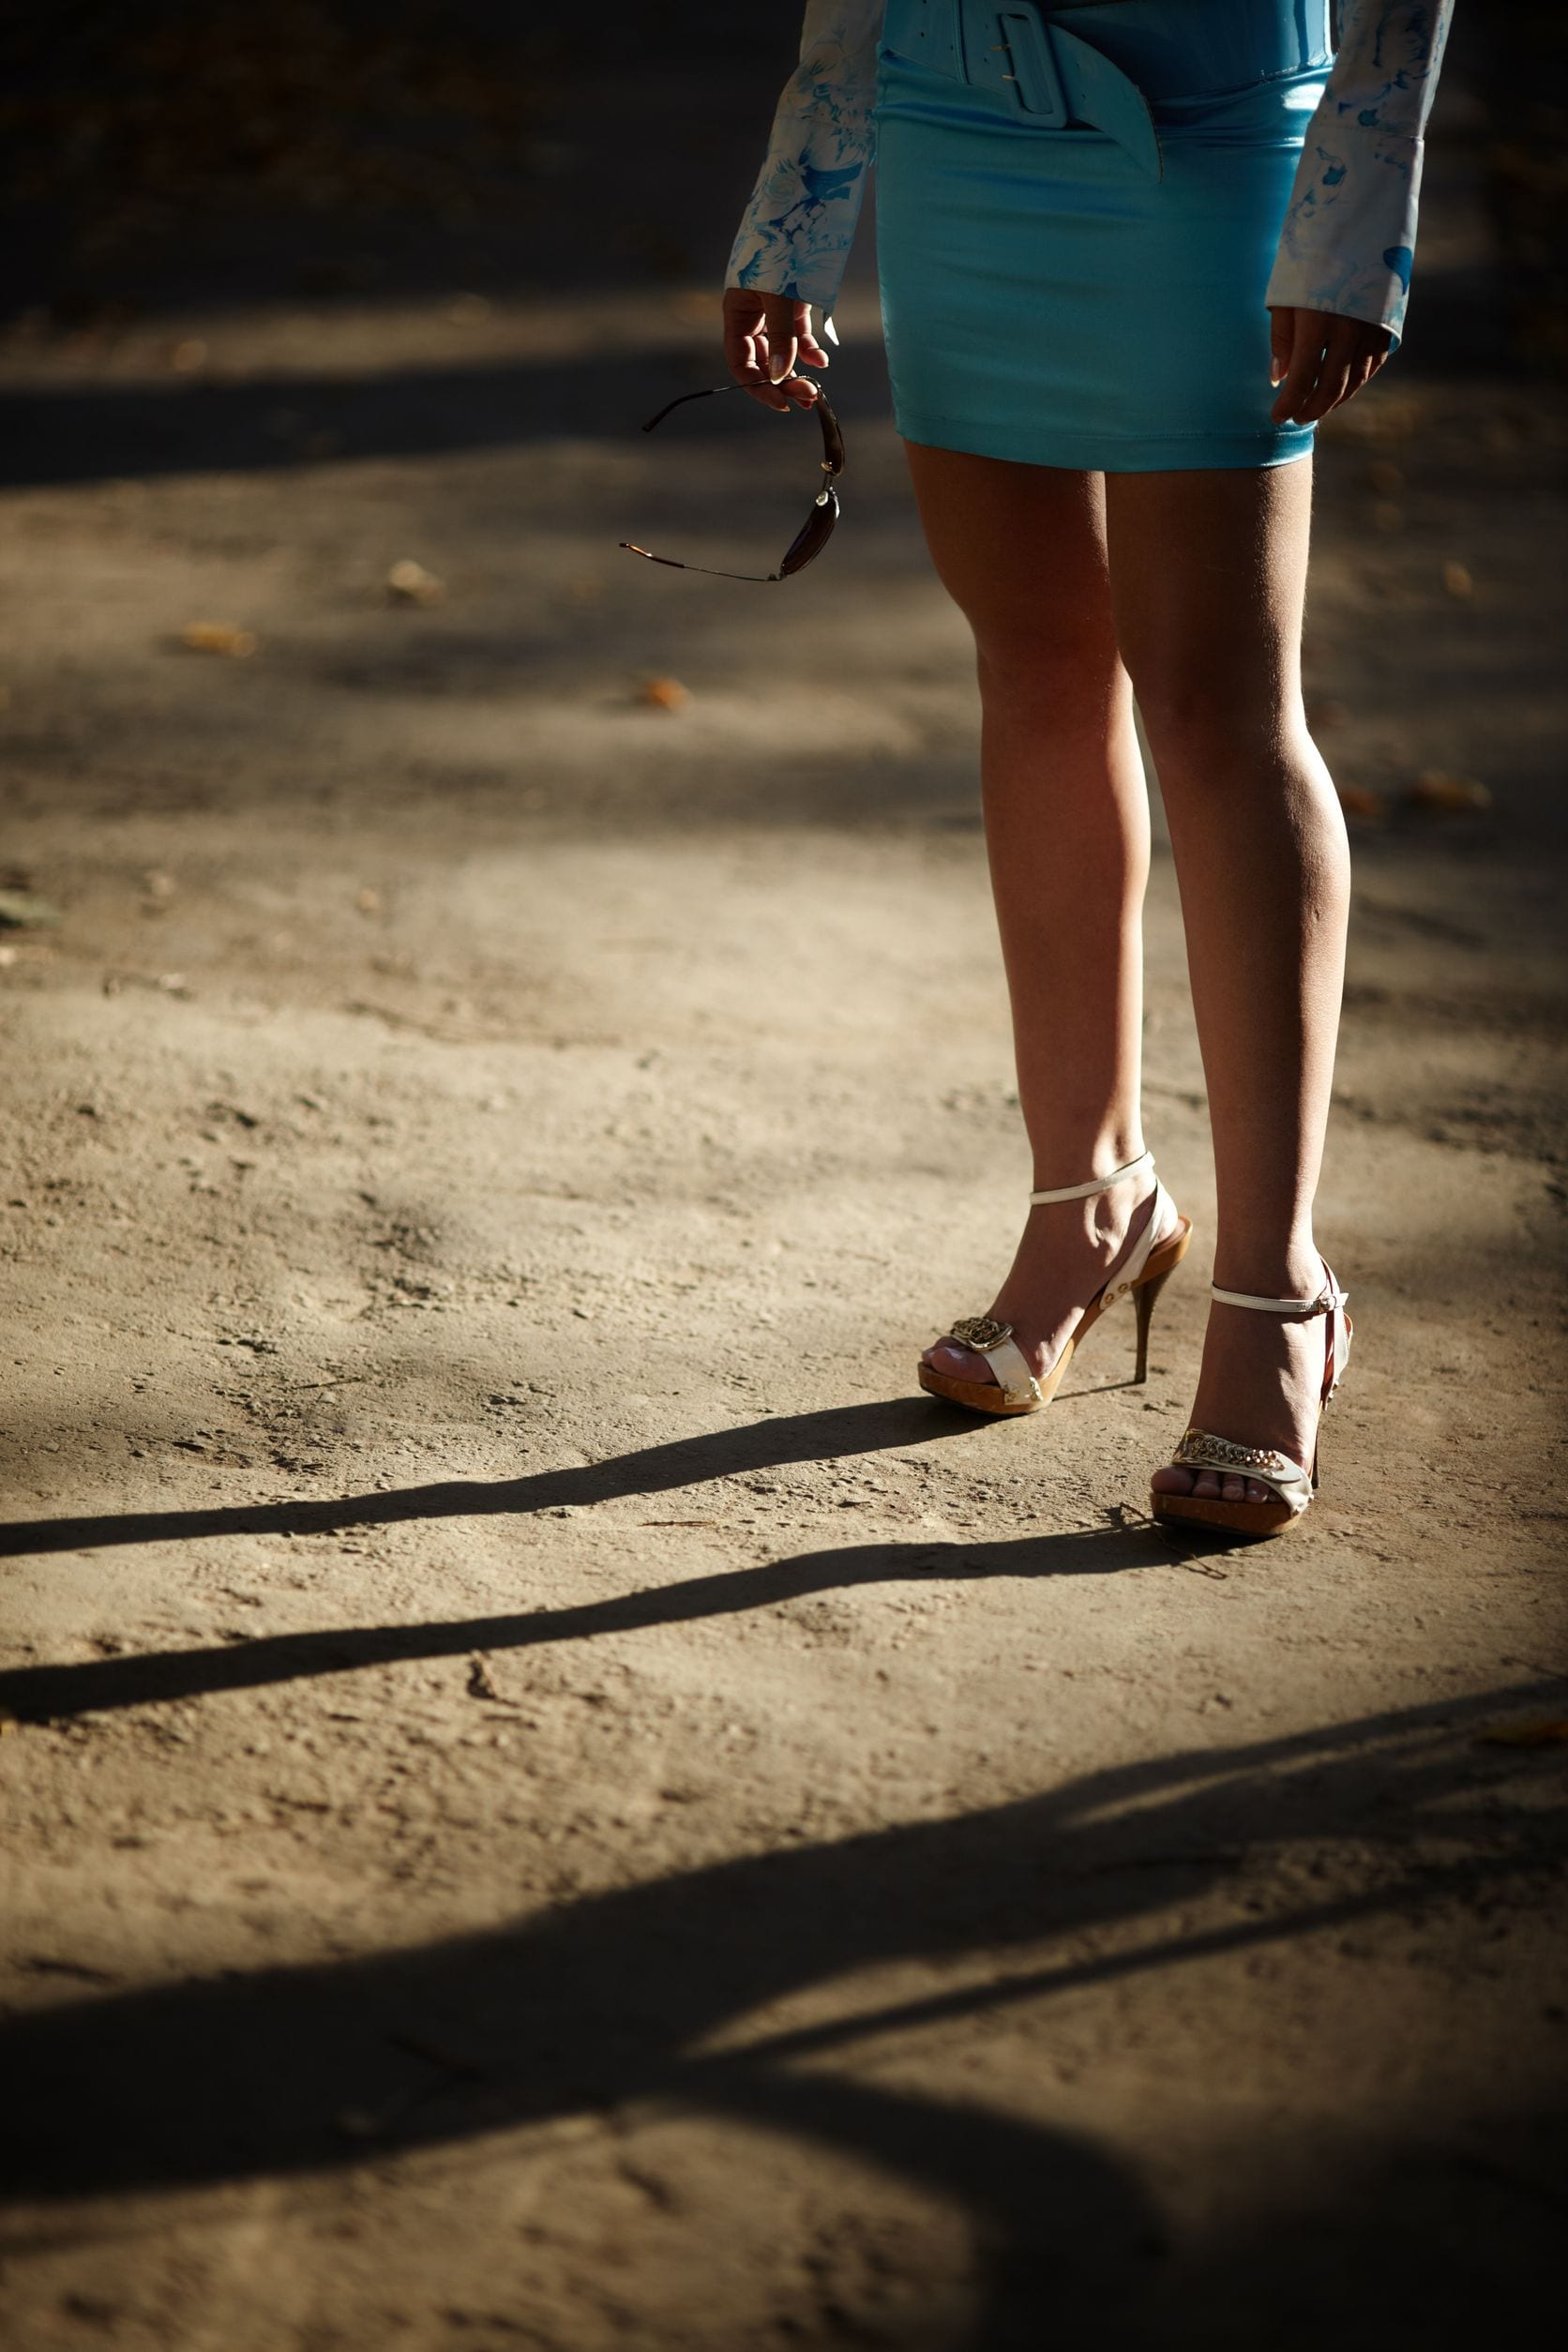 Prostitution Crimes in Illinois (and How to Fight Back)